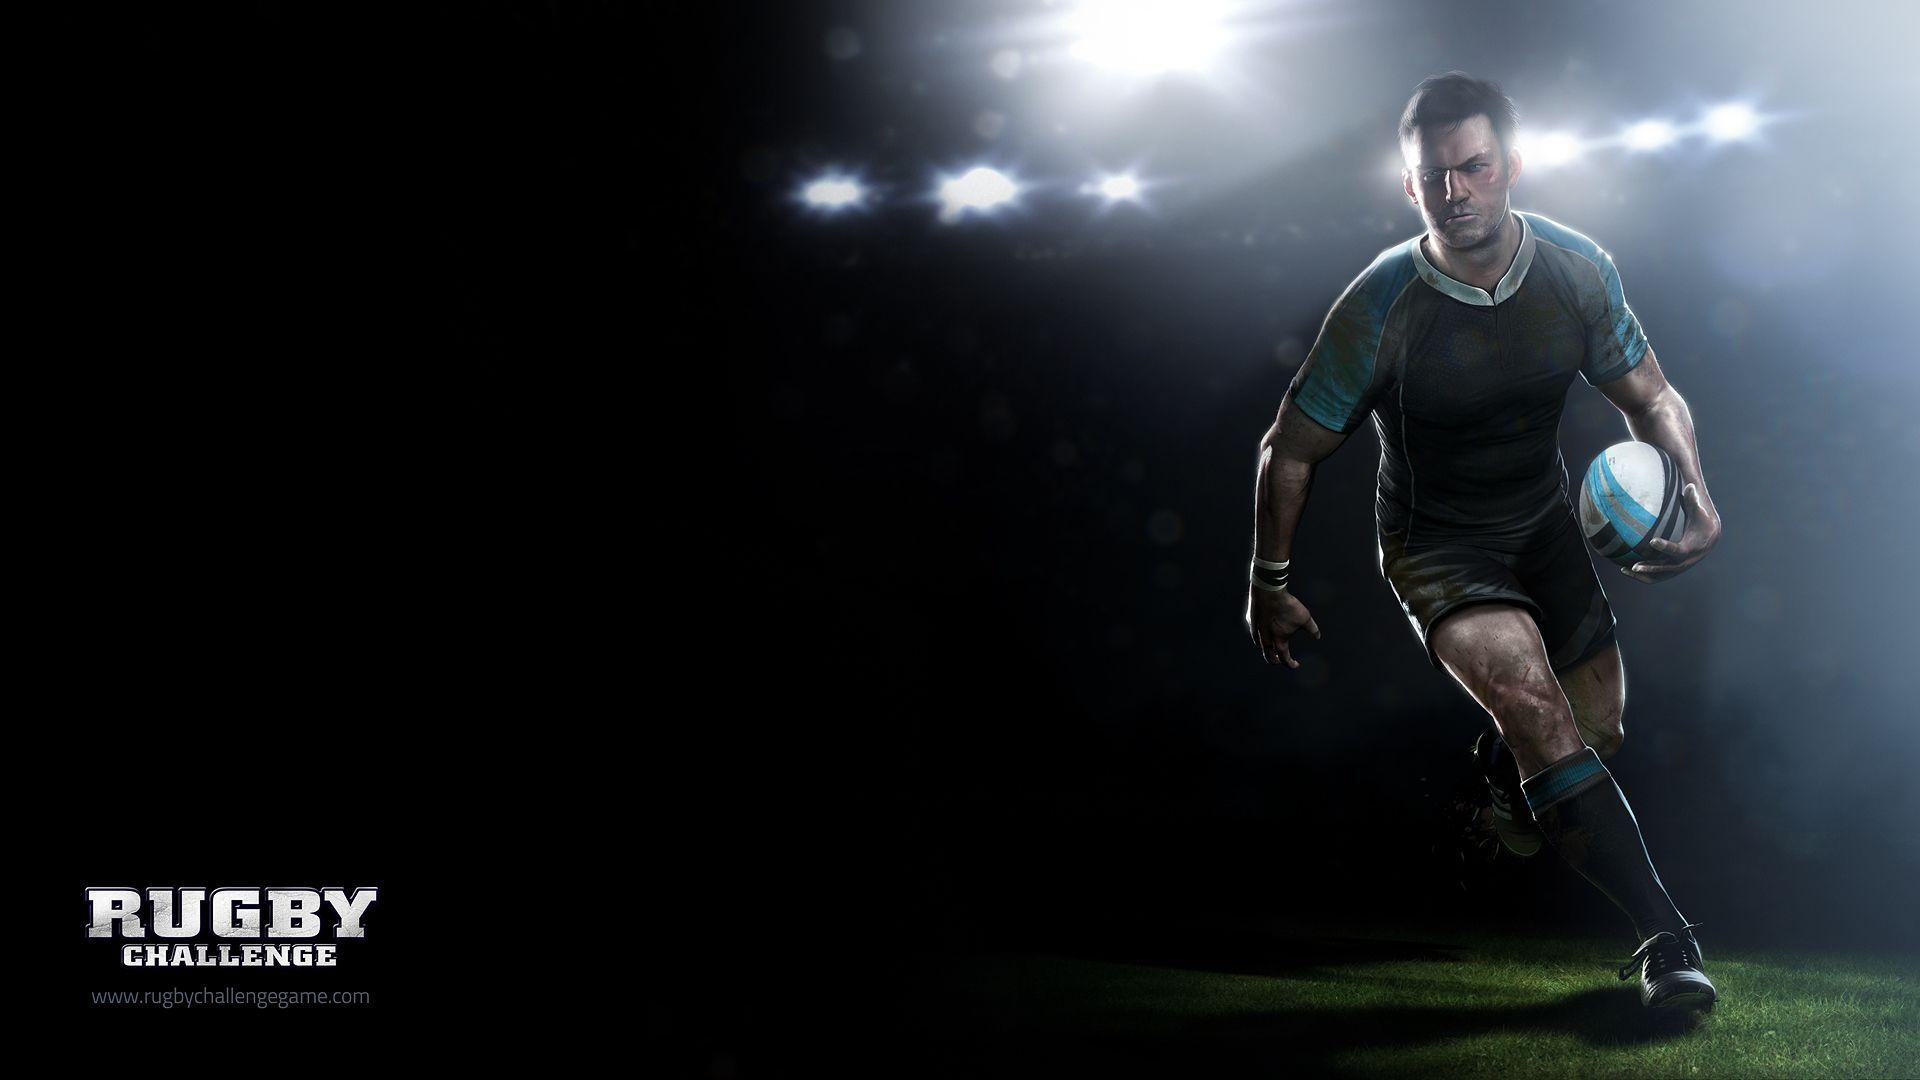 Image For > All Black Rugby Wallpapers